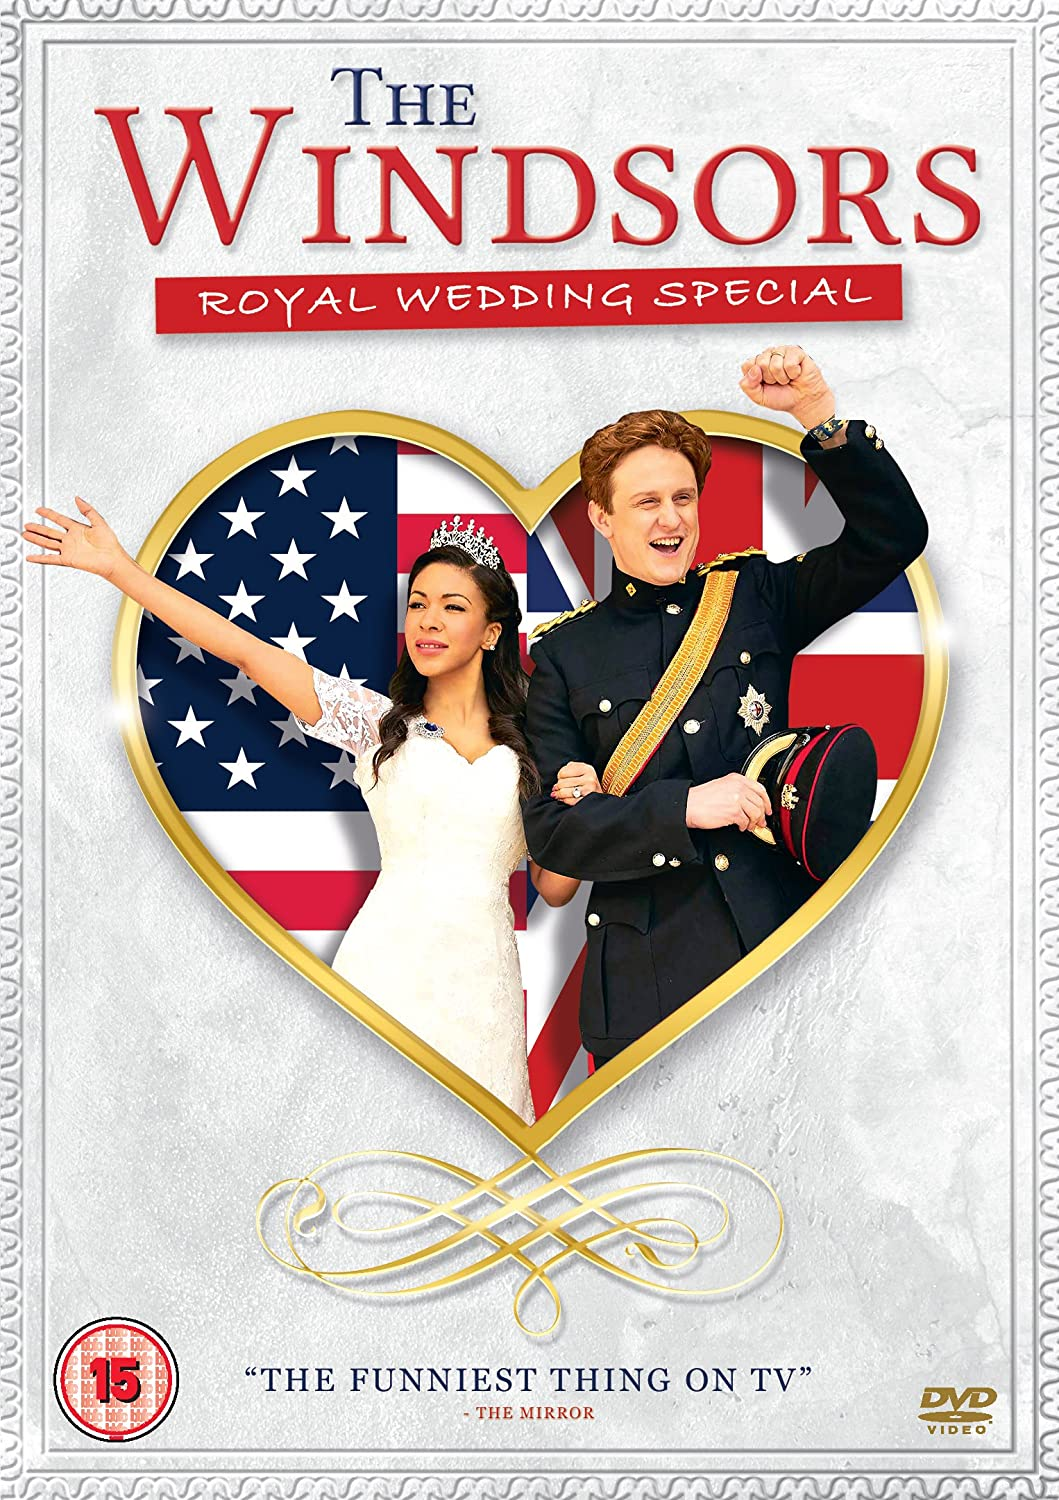 The Windsors: Royal Wedding Special